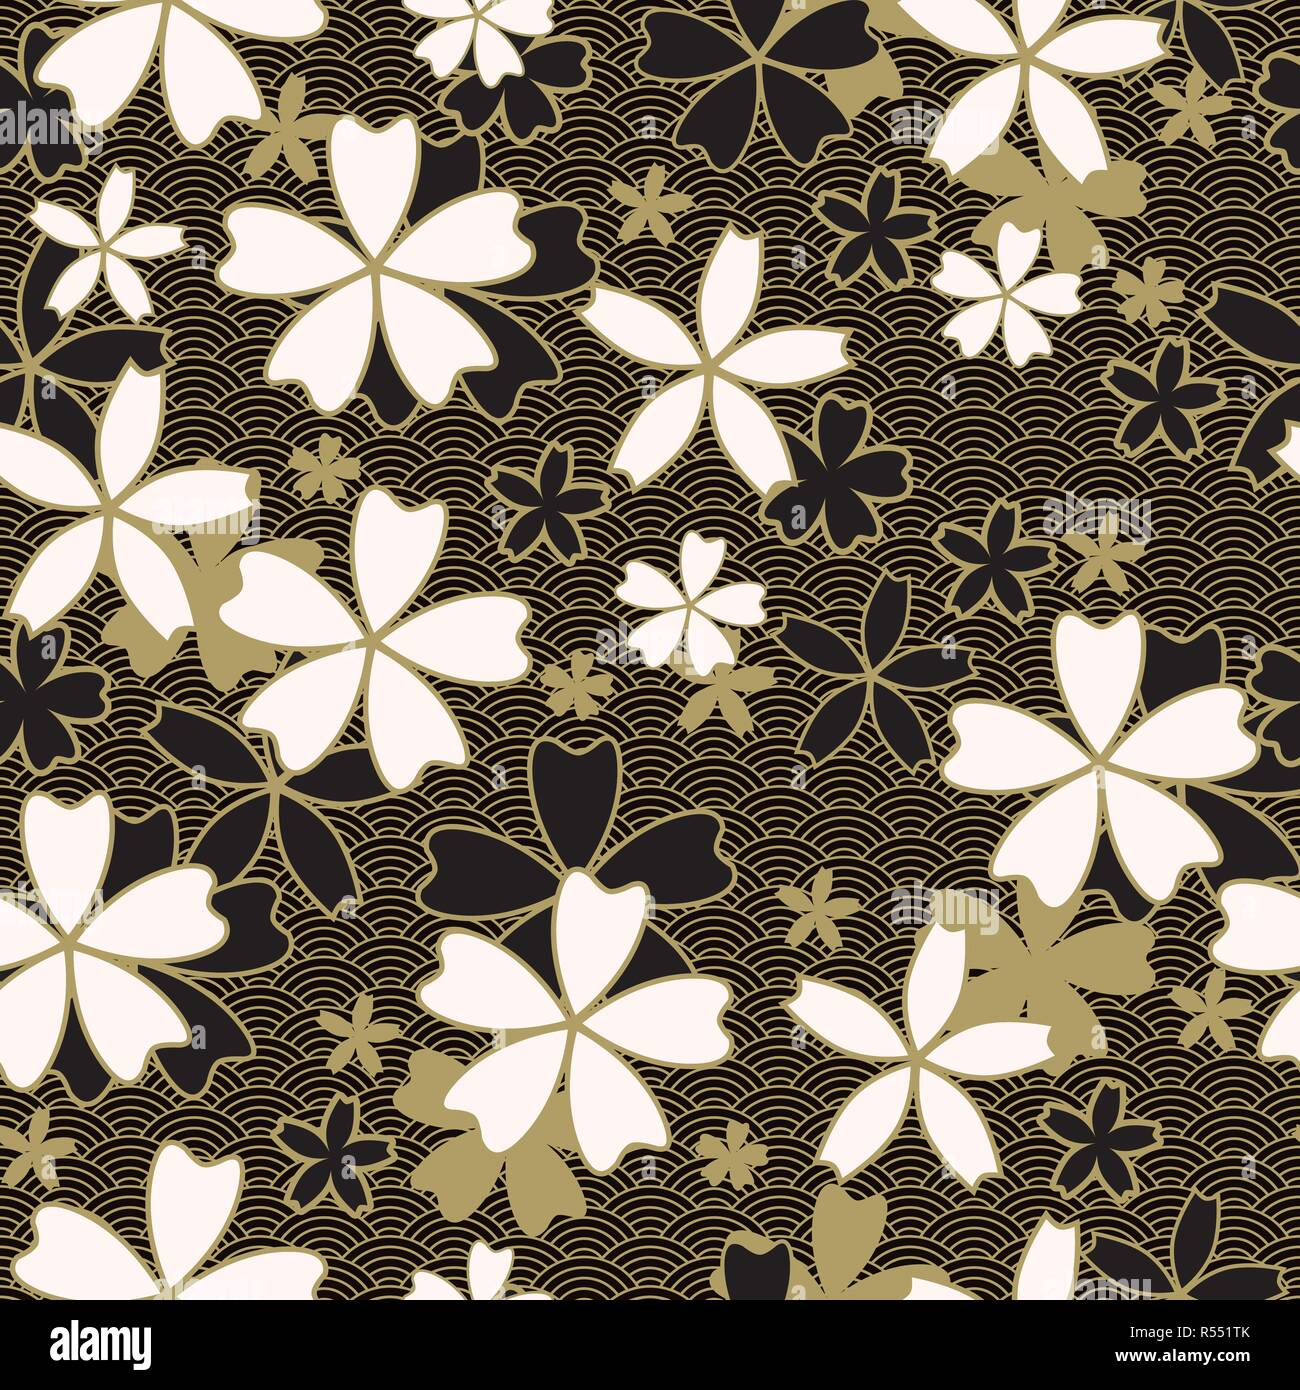 Japanese Classic Sakura Vector Seamless Pattern Floral In Black And Light Beige Colors Traditional Kimono Asian